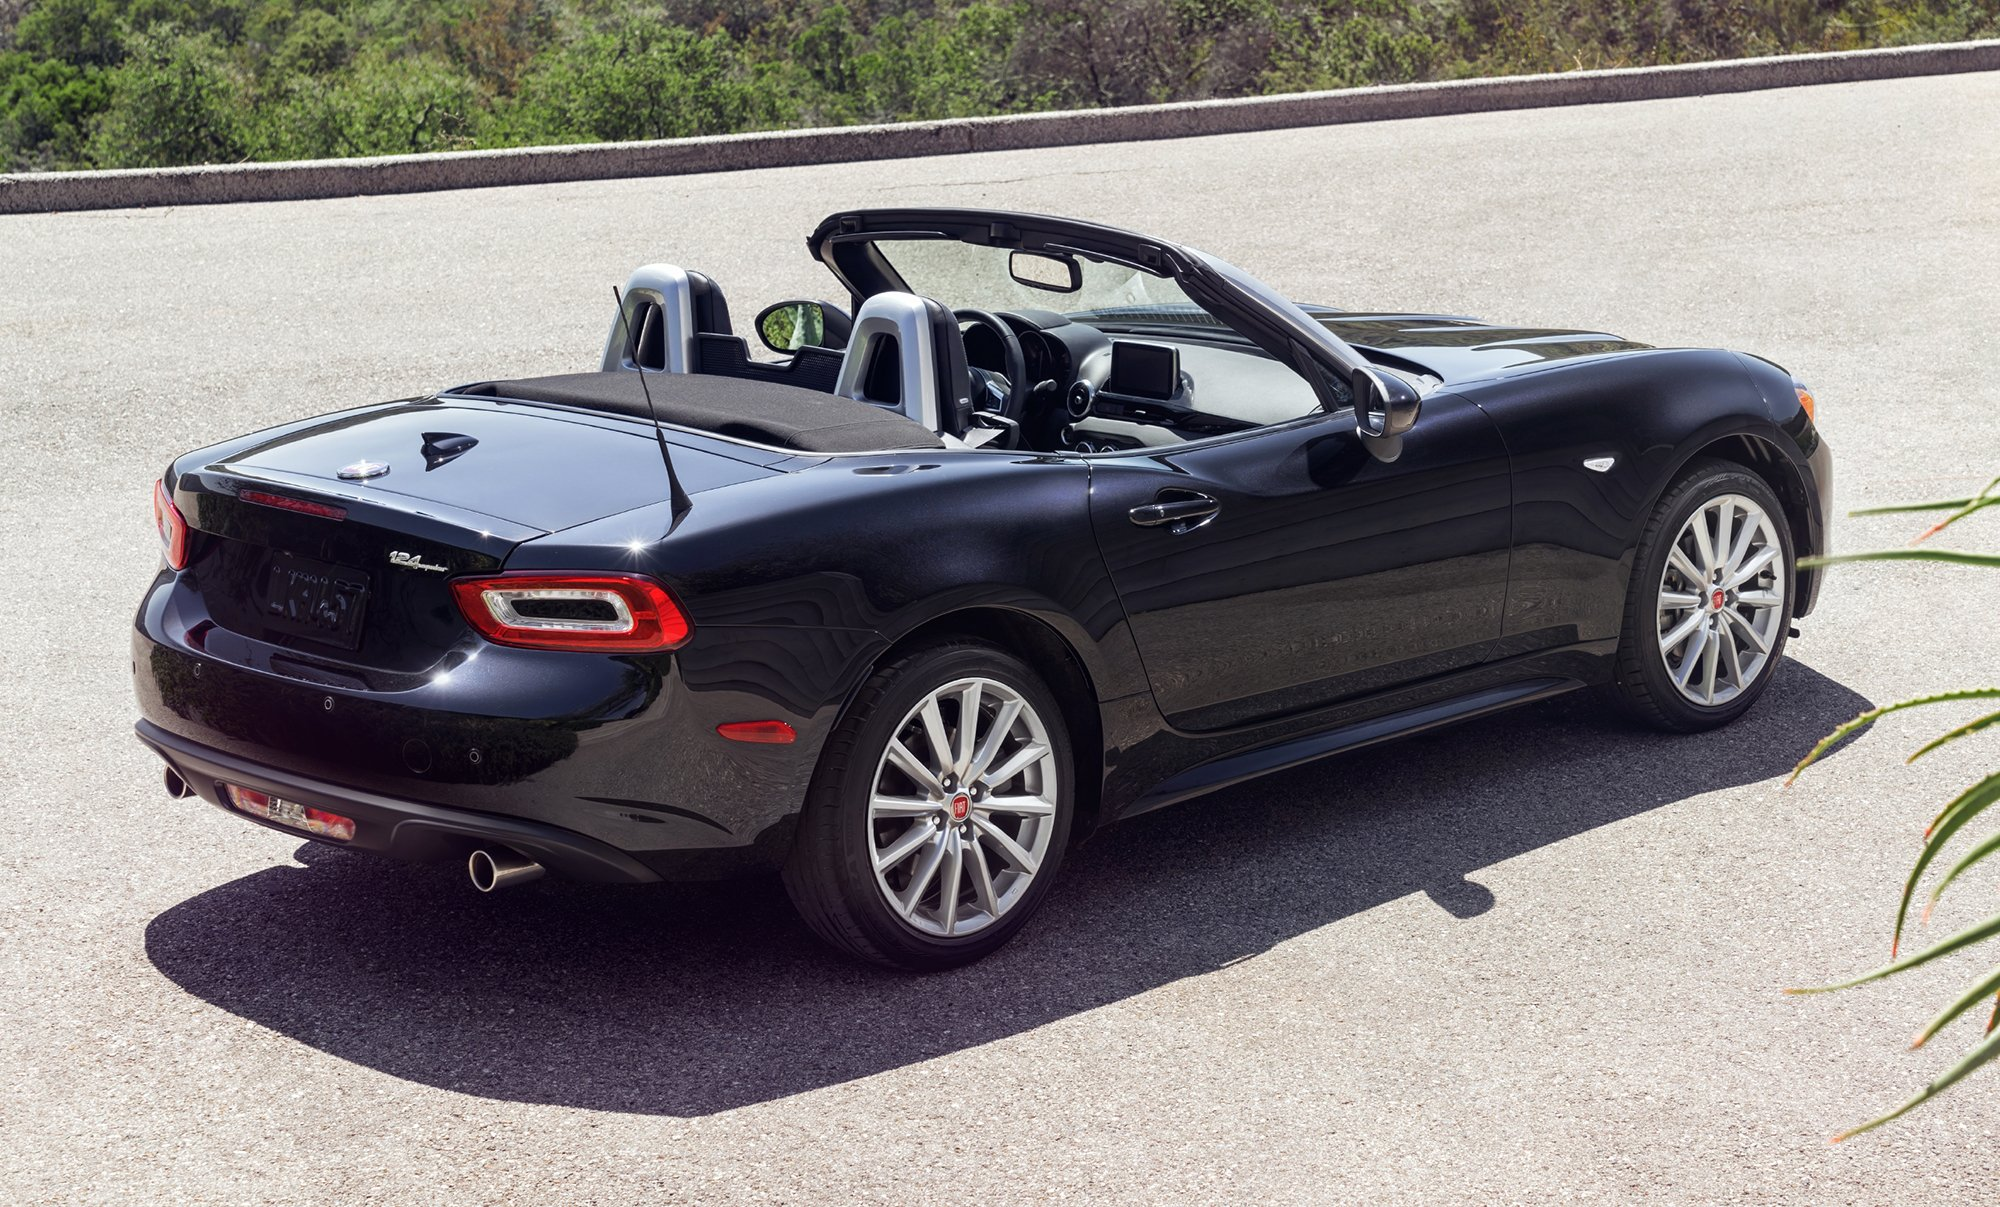 2016 fiat new cars photos 1 of 3 for Fiat 124 spider motor